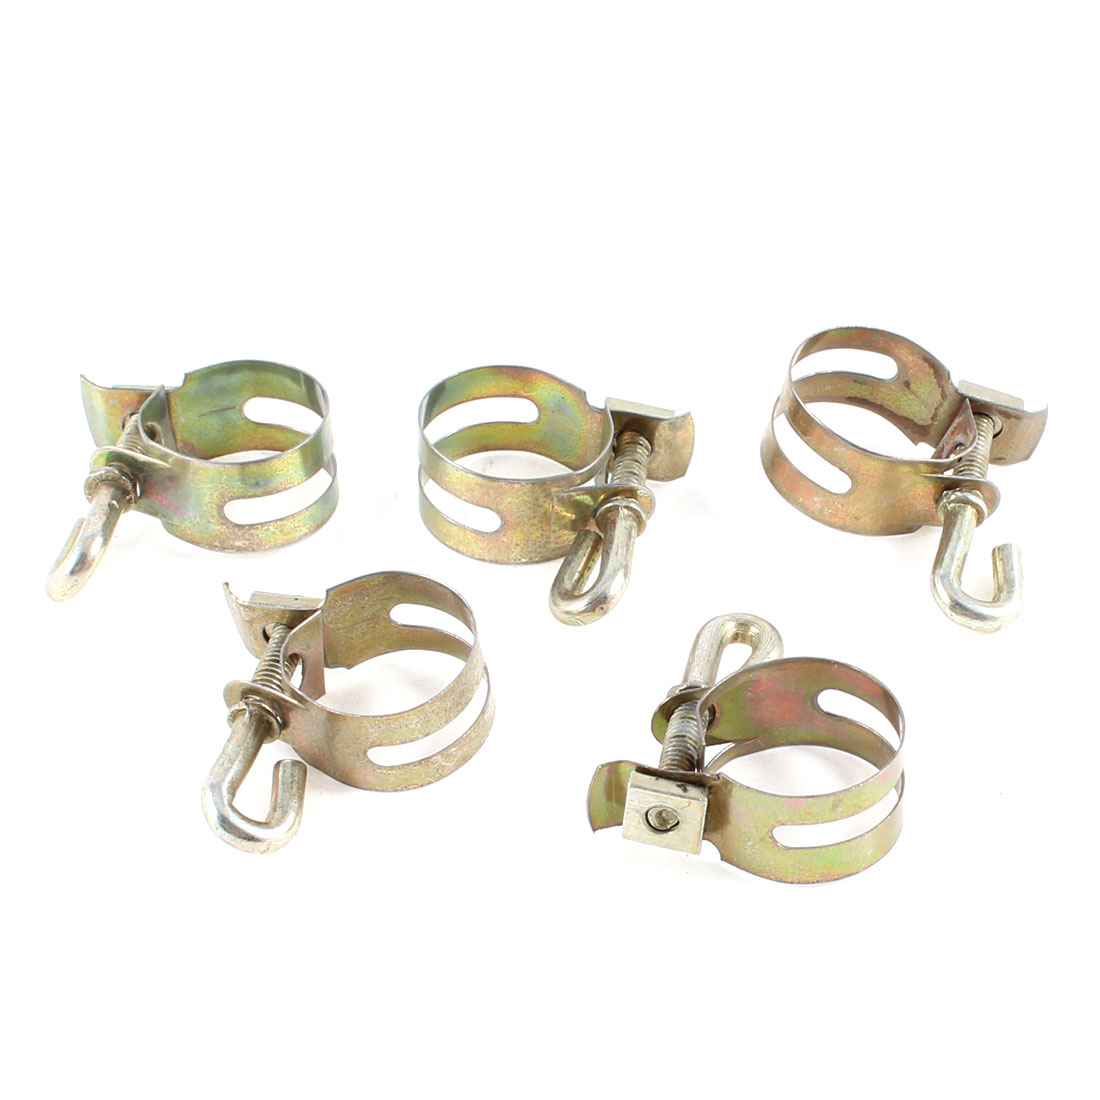 Gas Water Pipe Hose Tube Holder Metal Band Clamps 5 Pcs